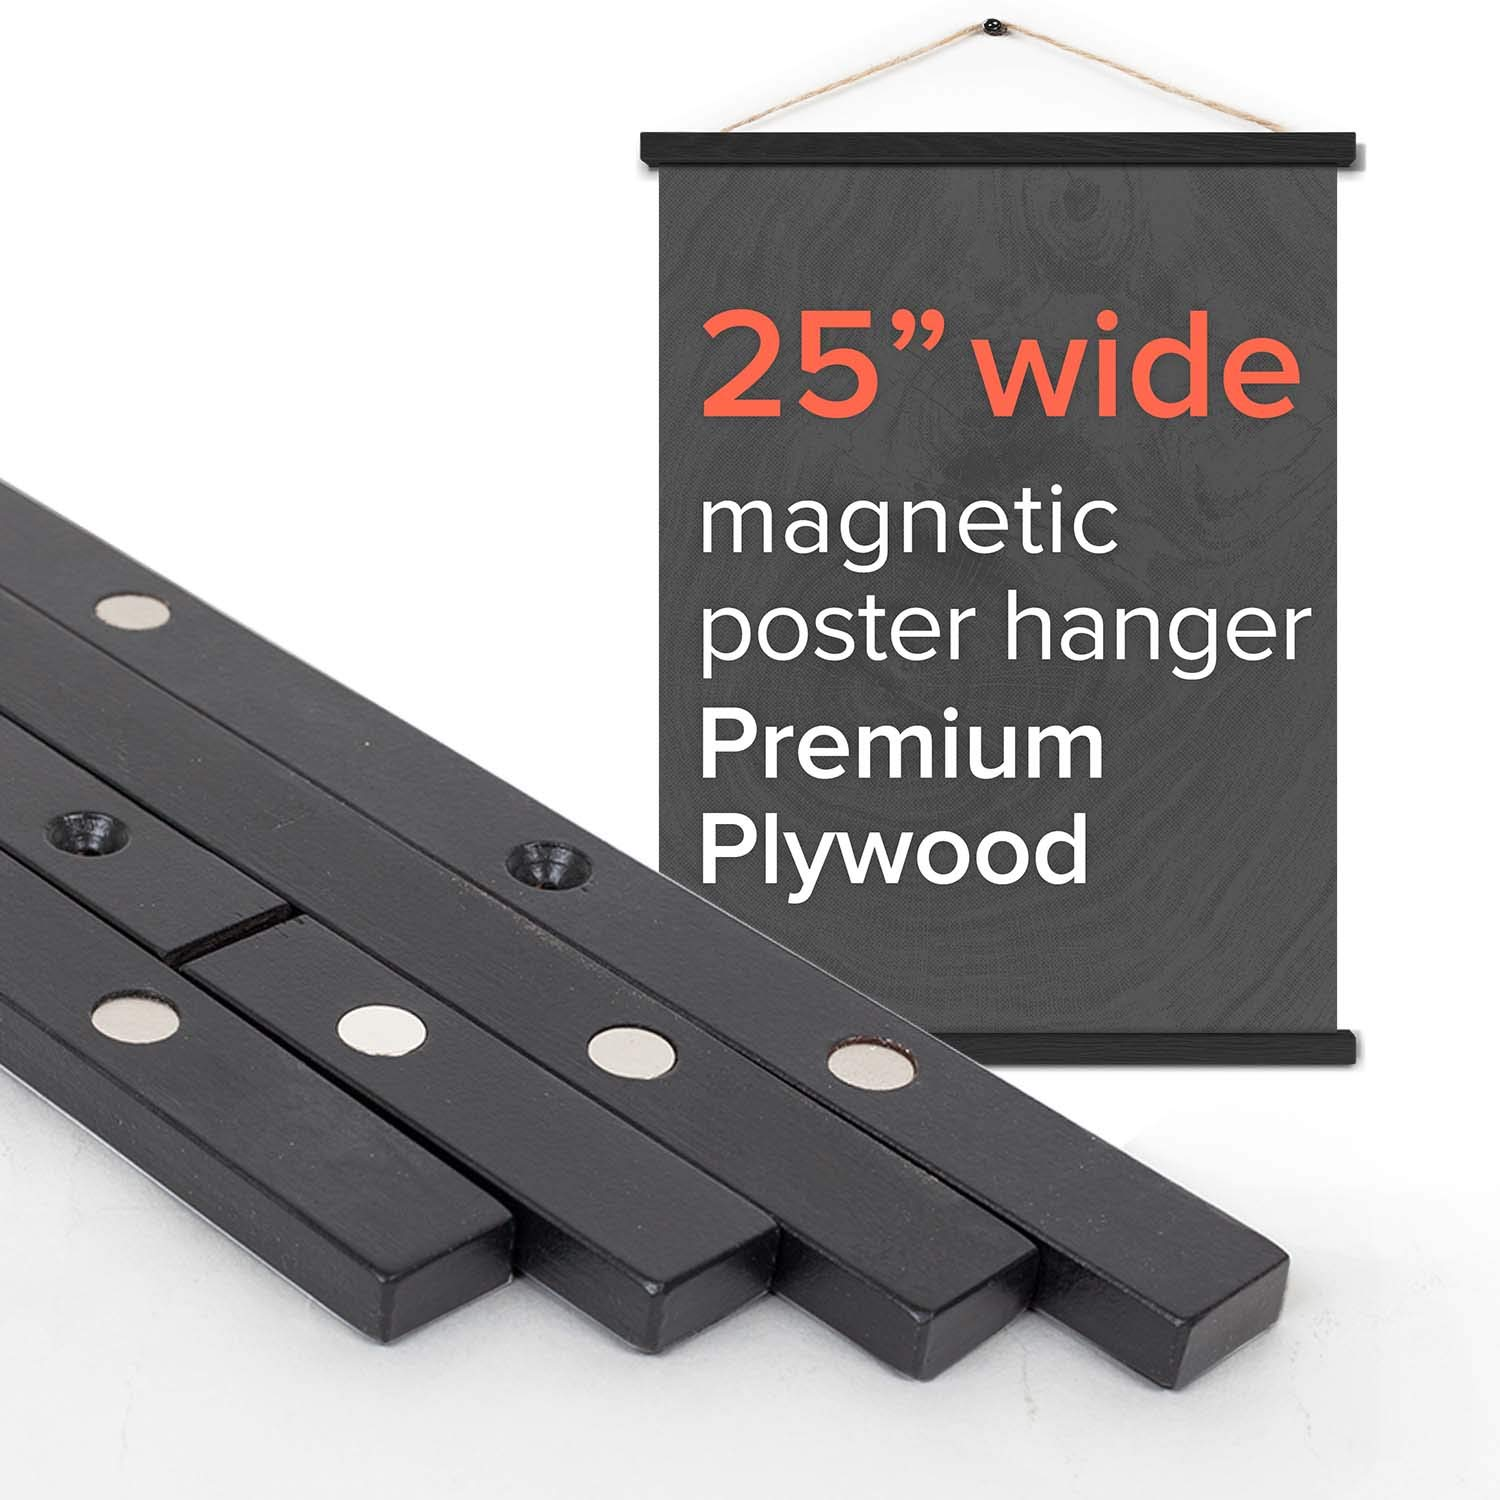 Stiicks 25'' Wide Magnetic Poster Frame Hanger in Black - Premium Plywood and Magnets Strong Enough to Hang Any Length